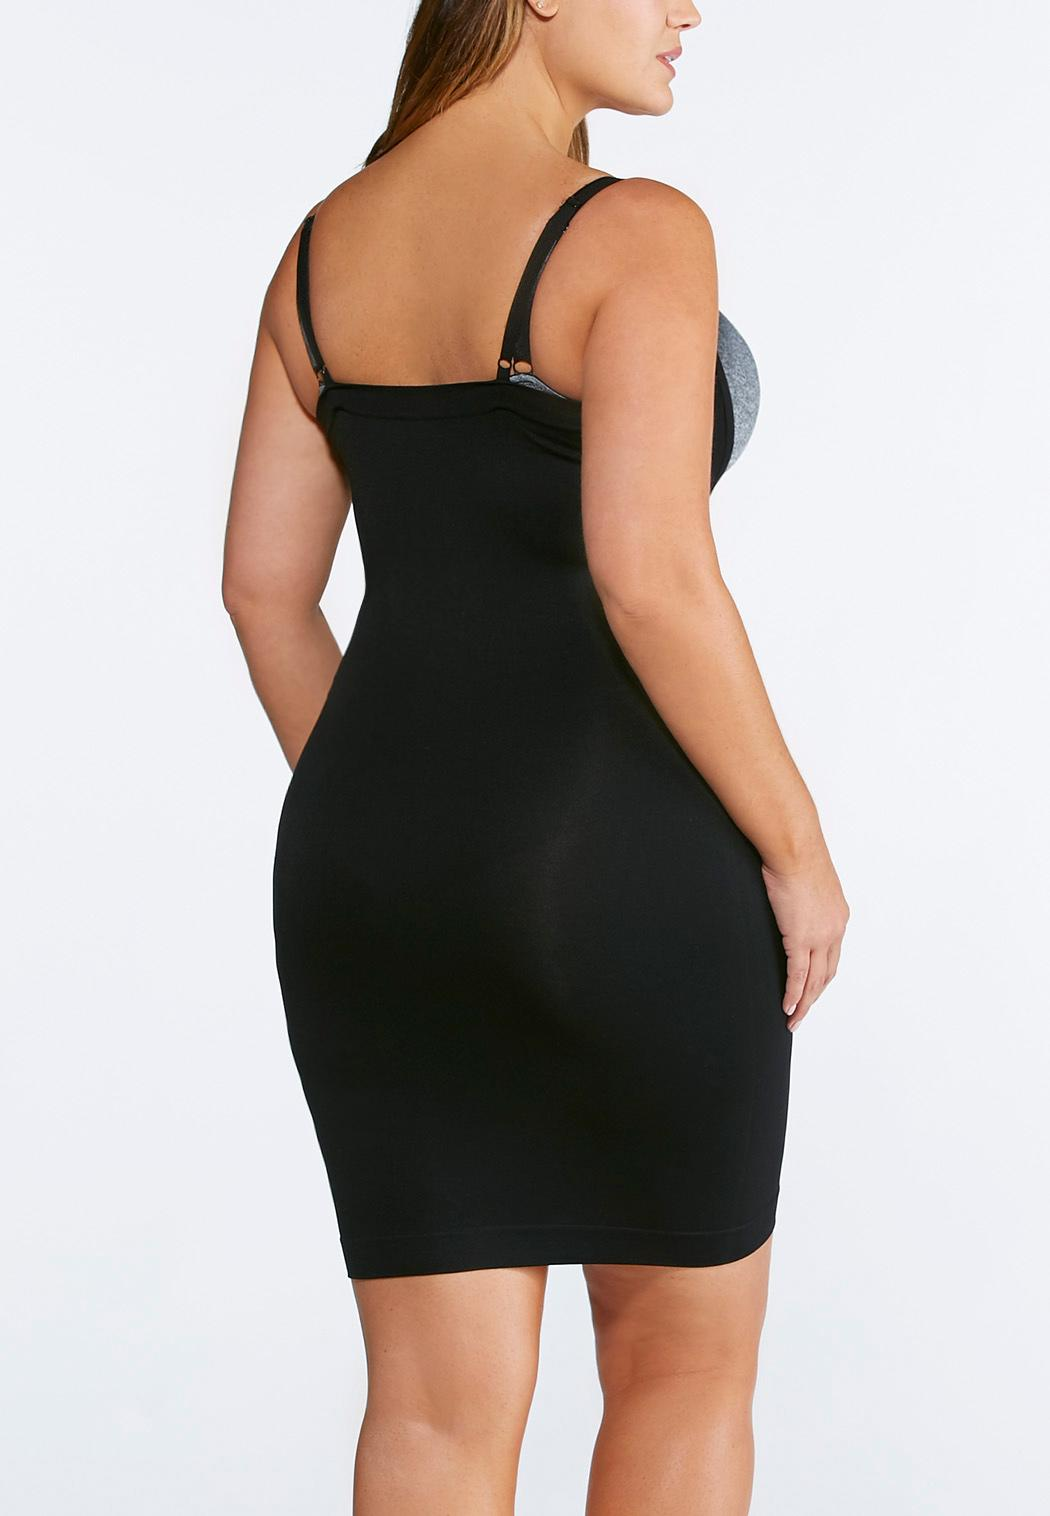 Plus Extended Black Seamless Slip (Item #35051473)